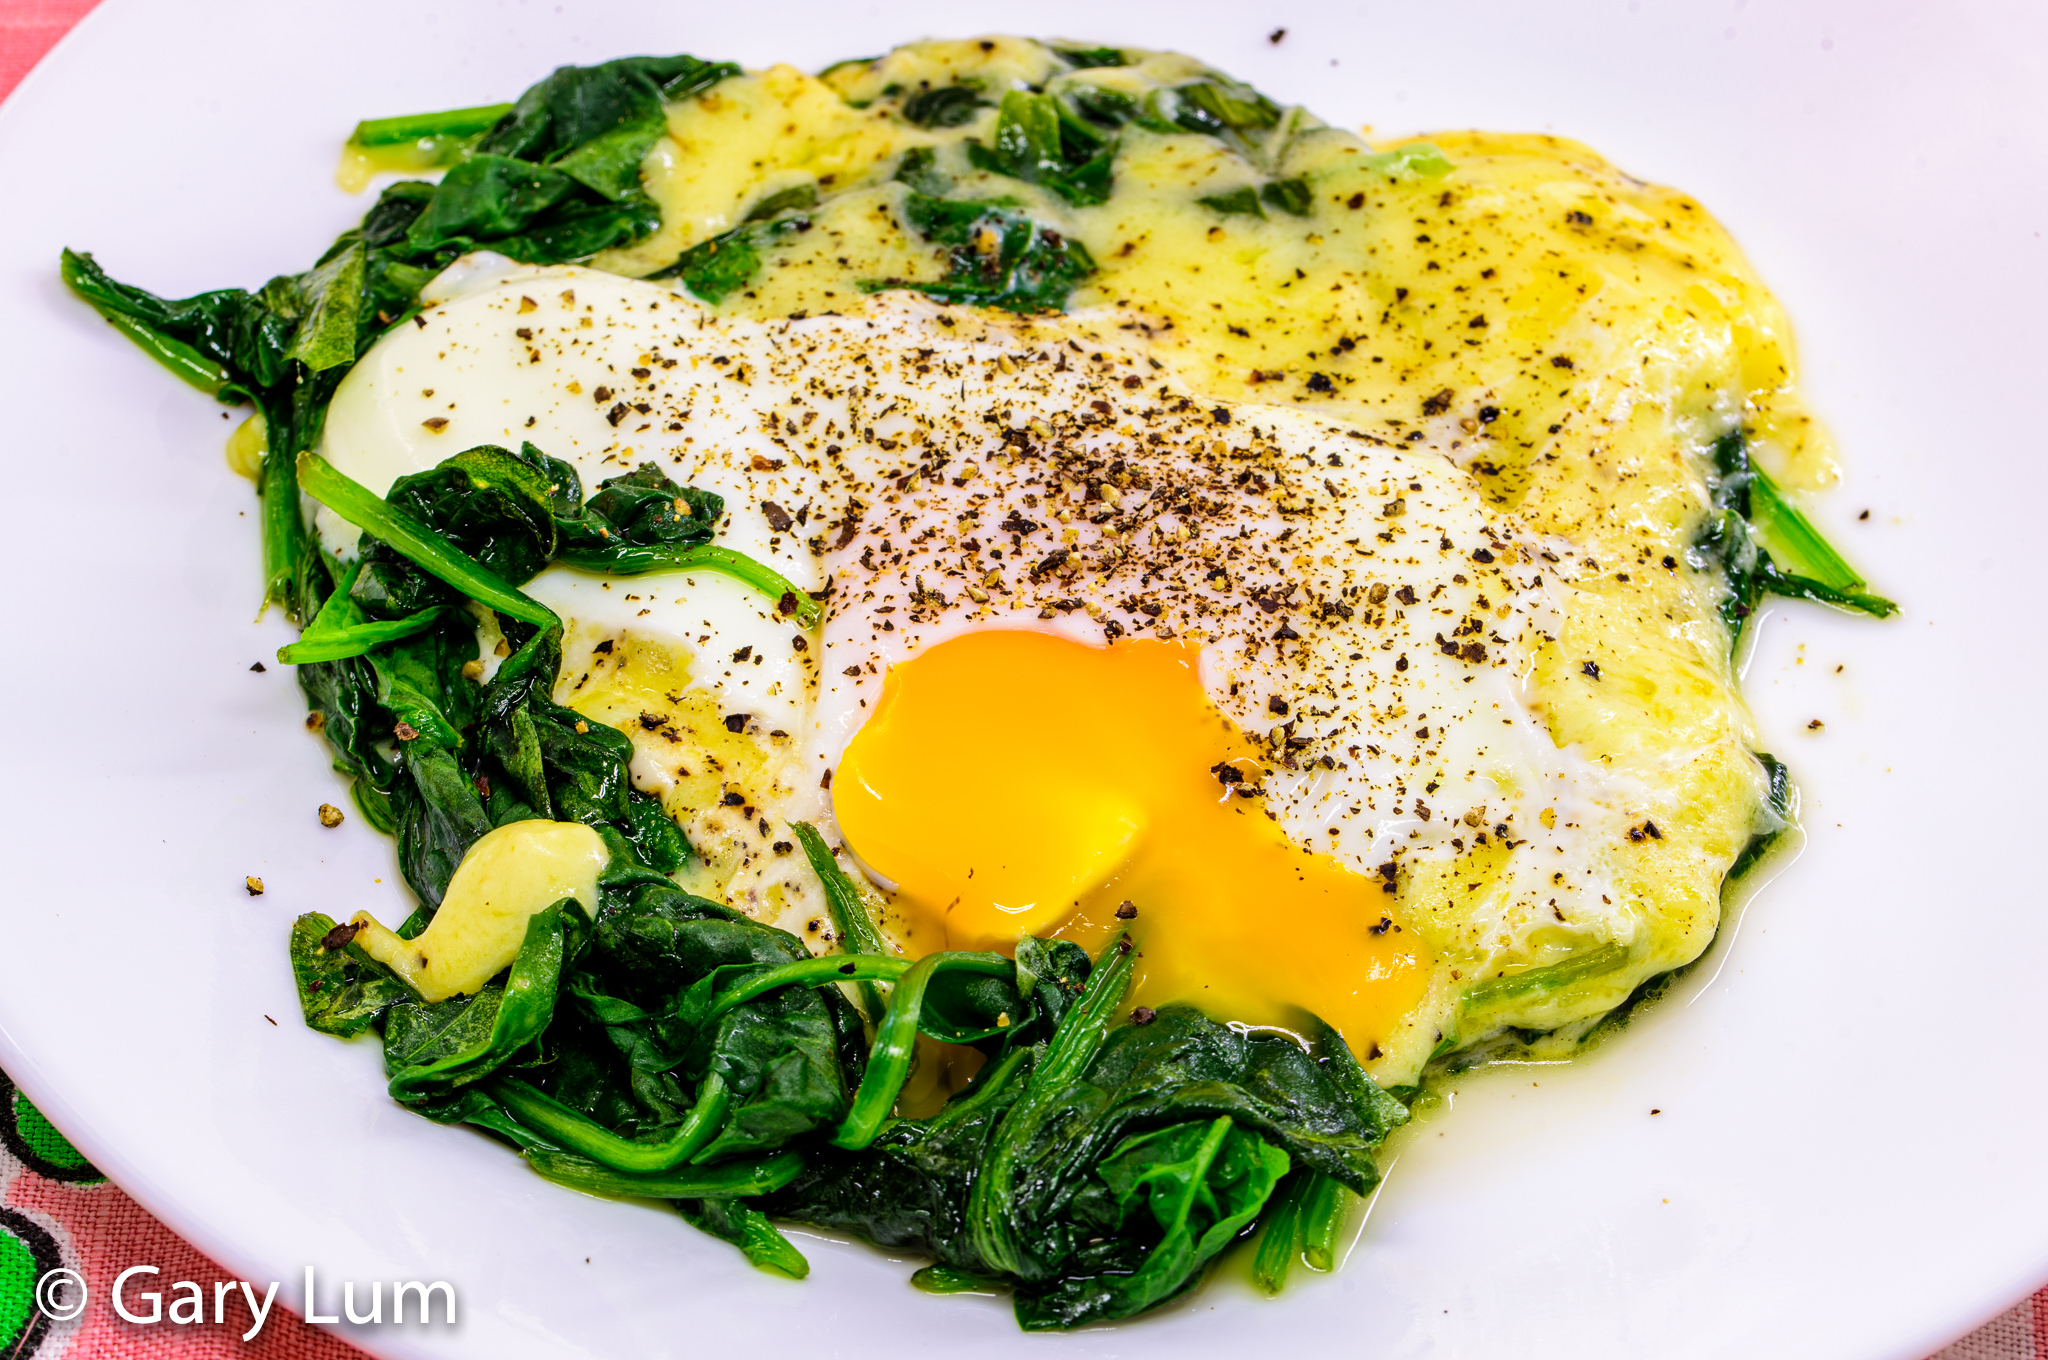 Steamed egg, melted cheese, and wilted spinach. Gary Lum.